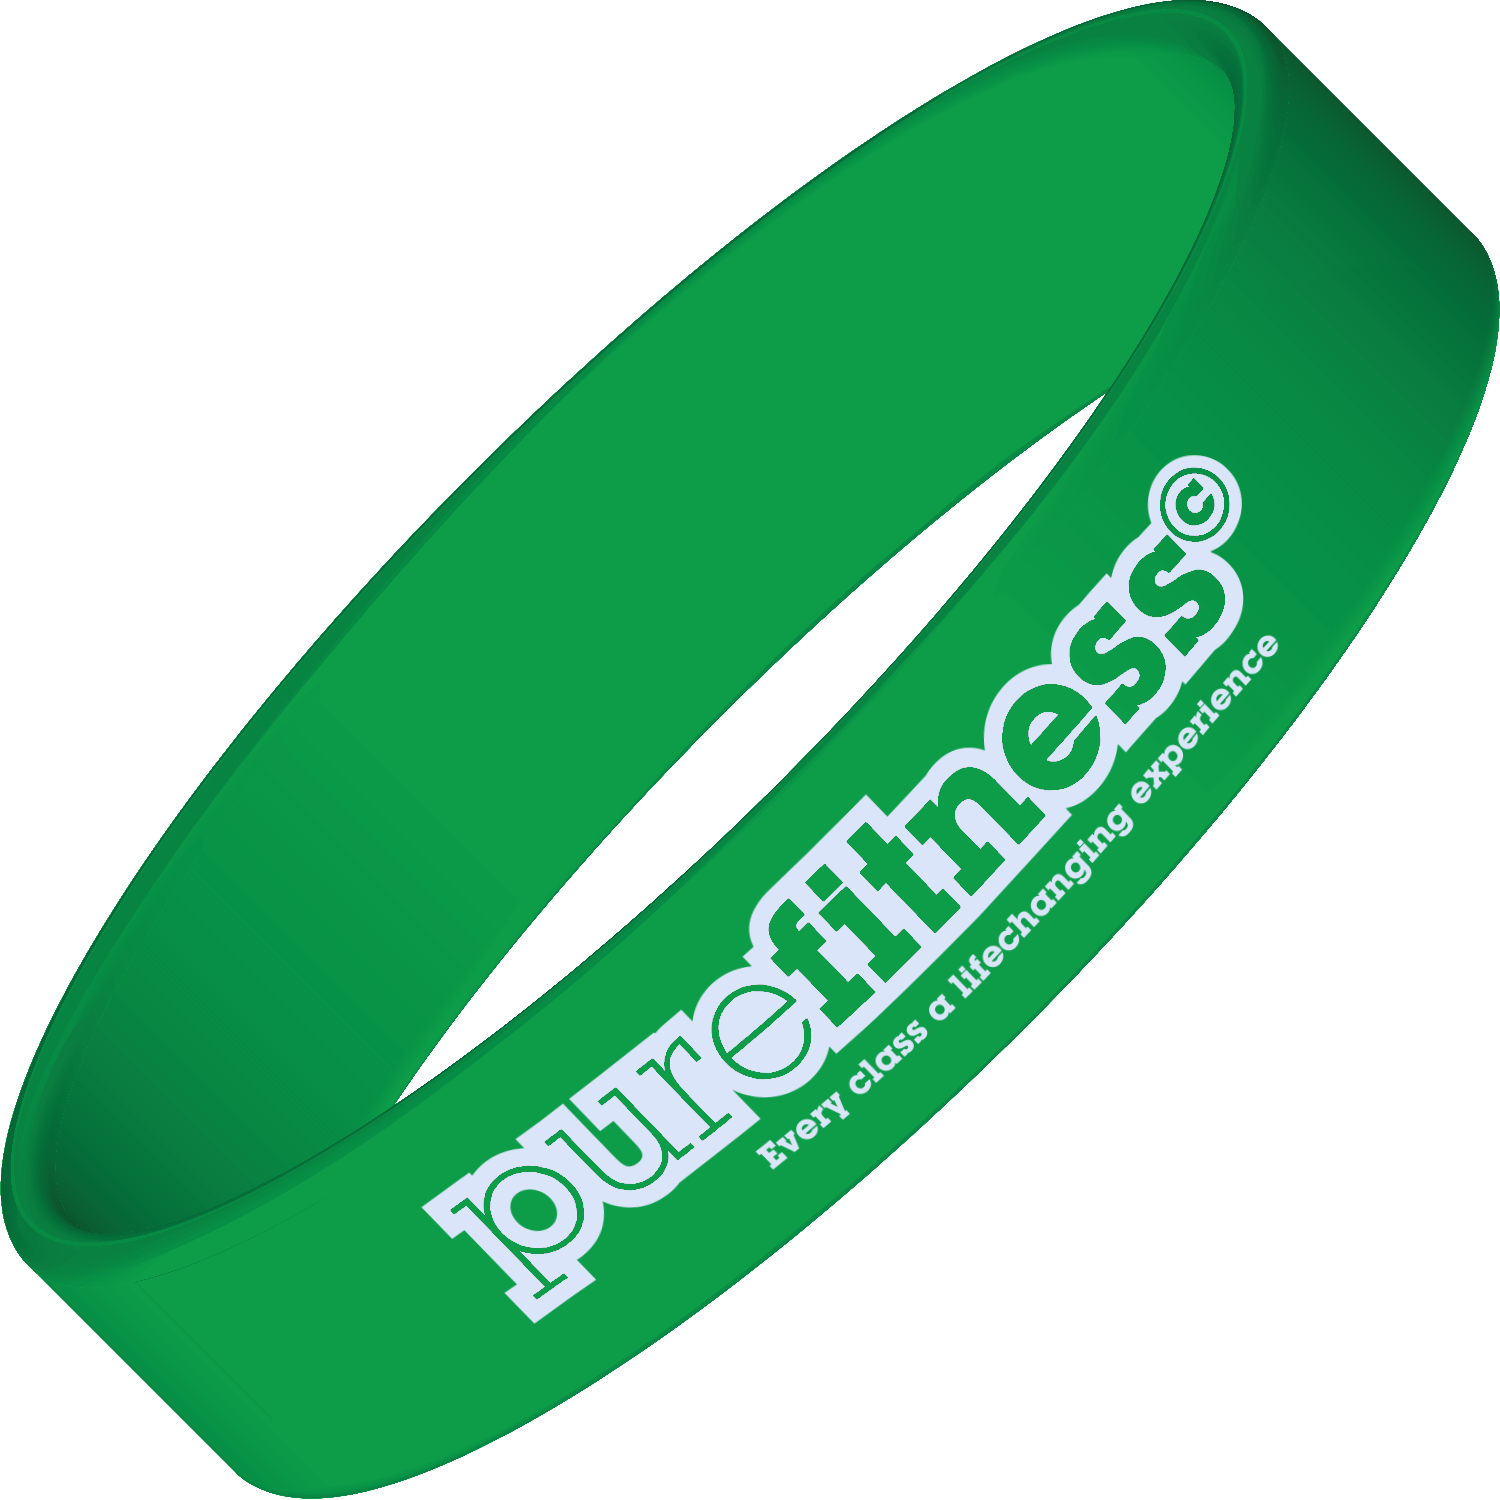 Express Printed Silicone Wrist Band